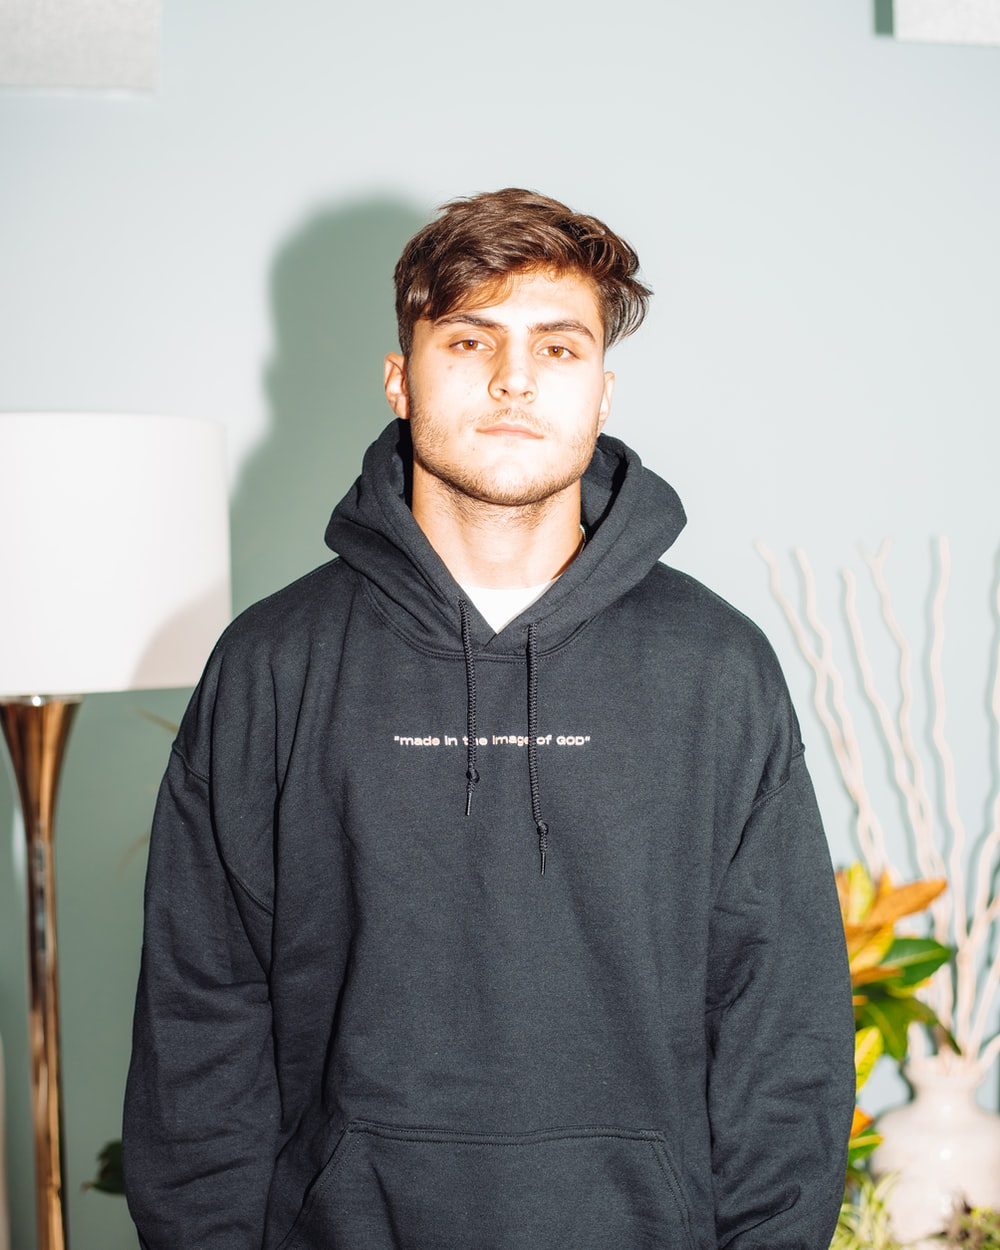 man in gray hoodie standing near white wall